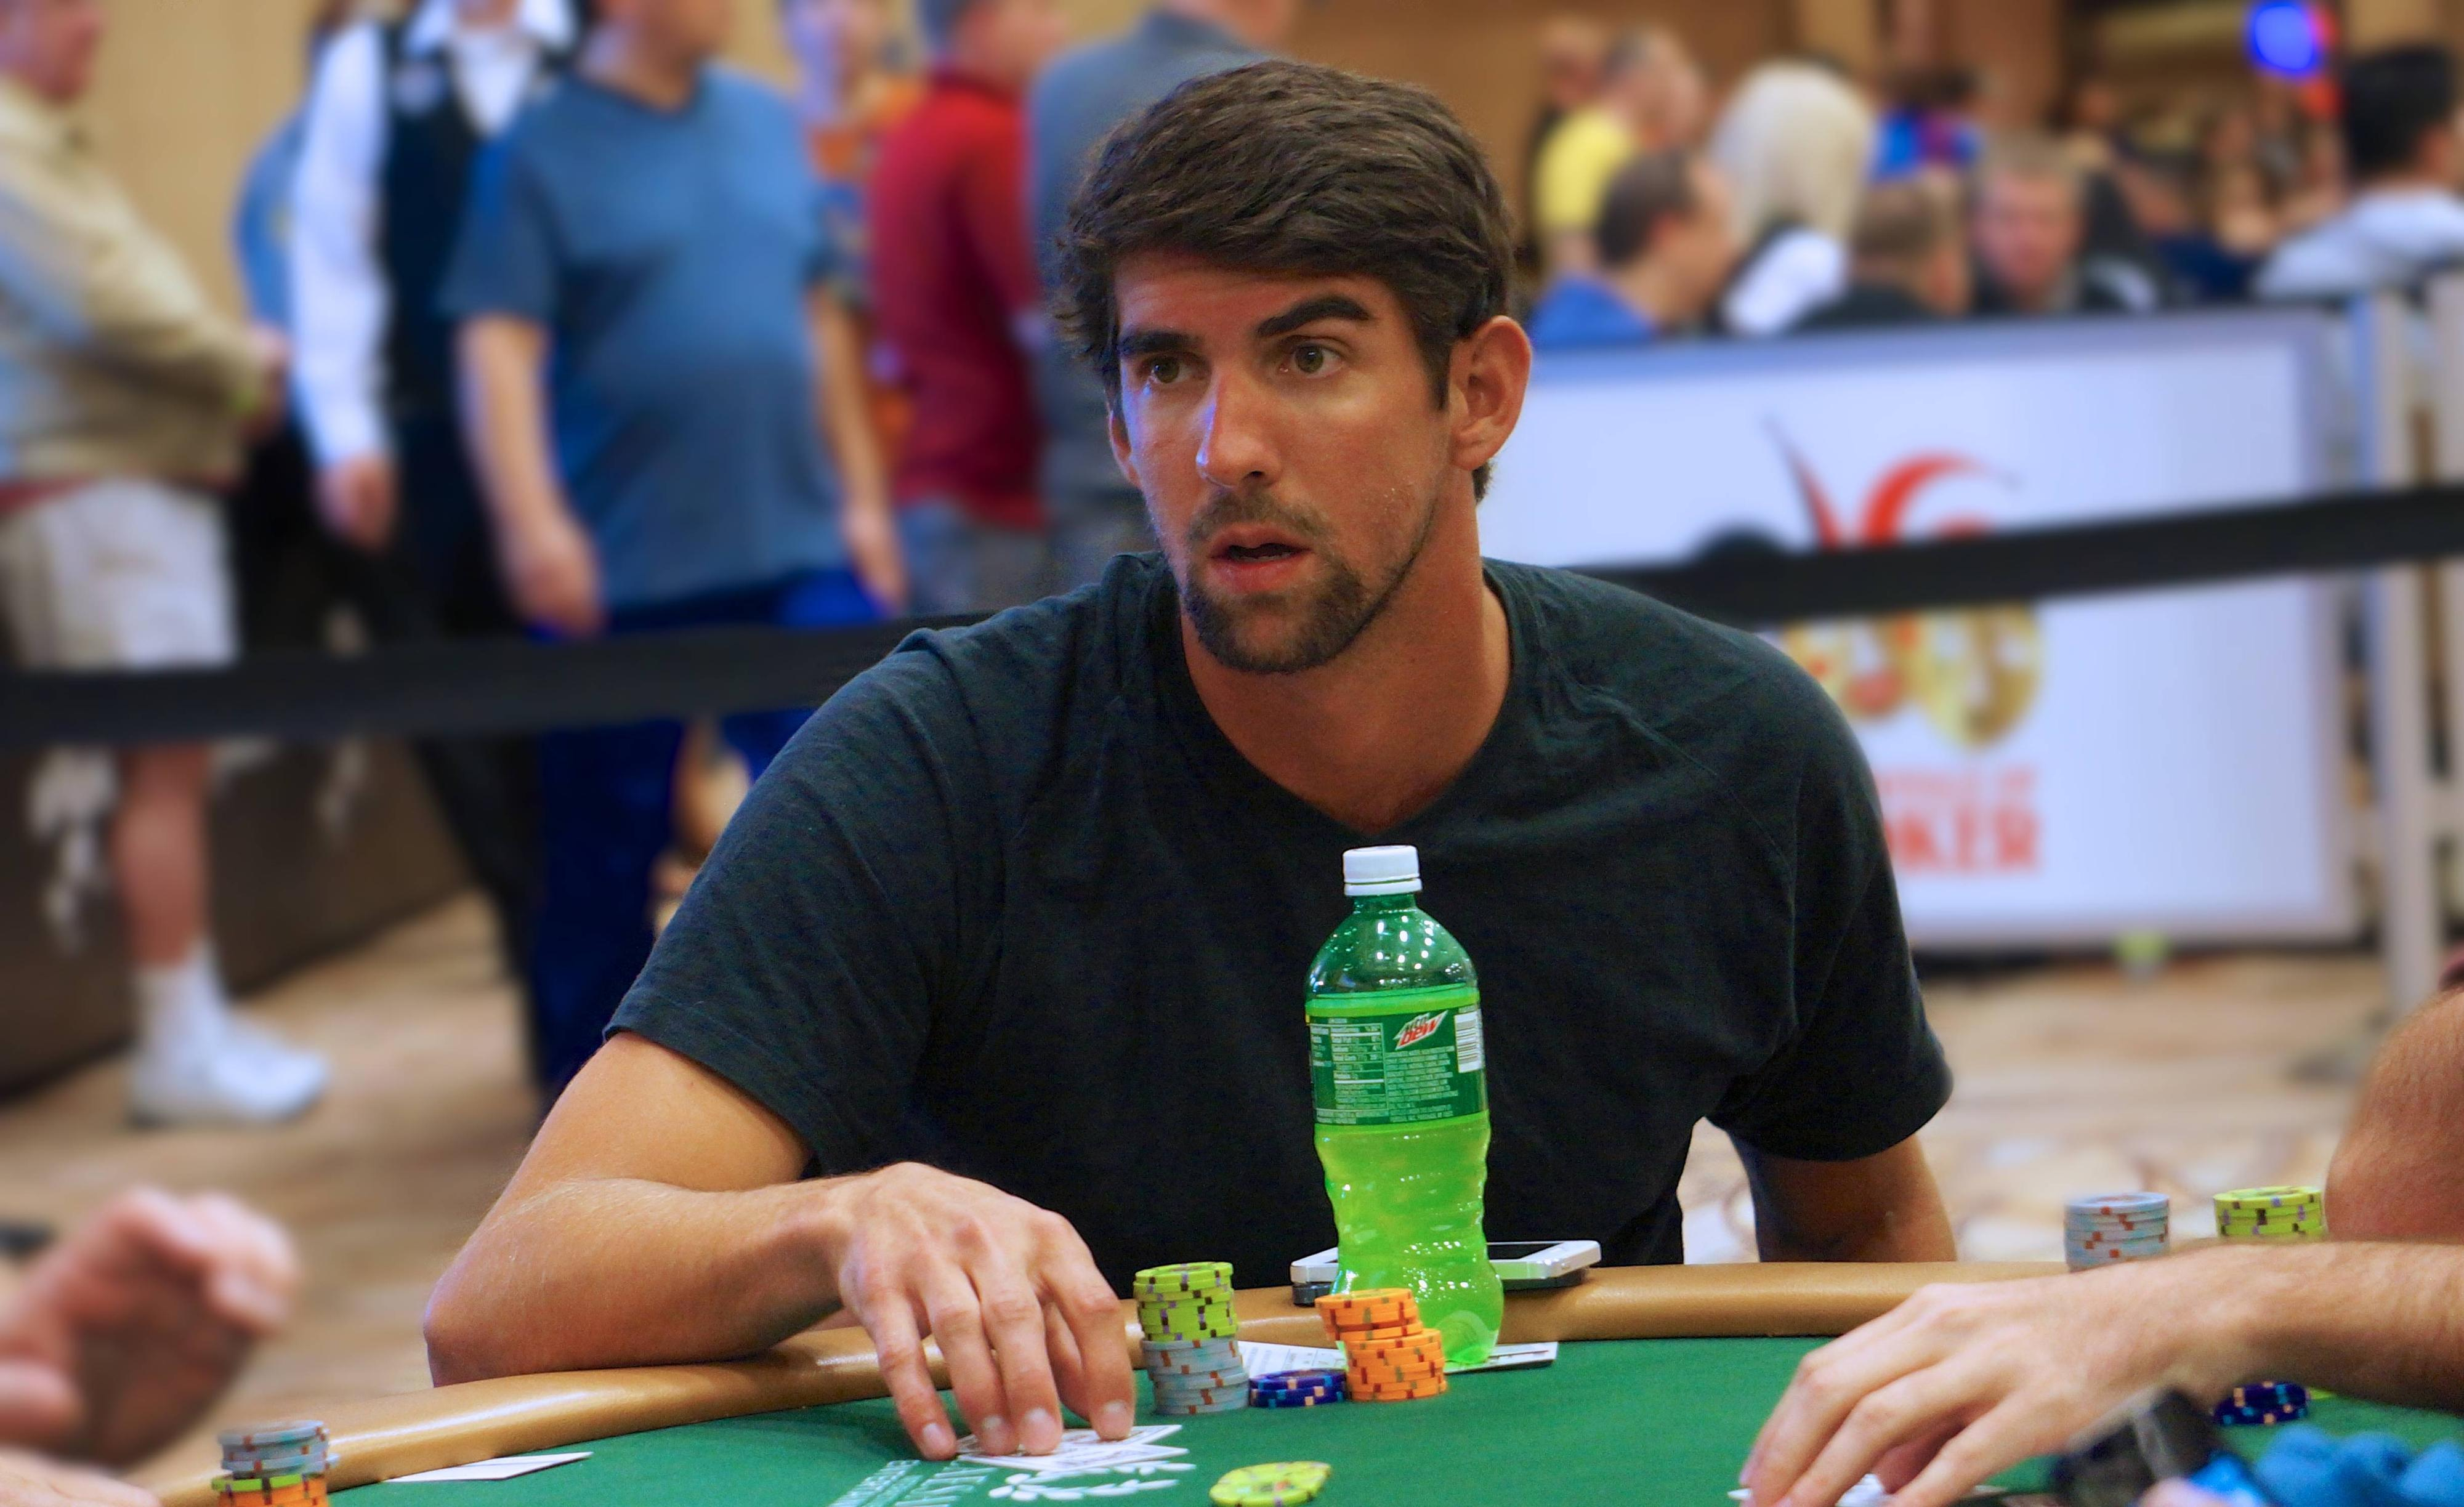 michael-phelps-poker-min